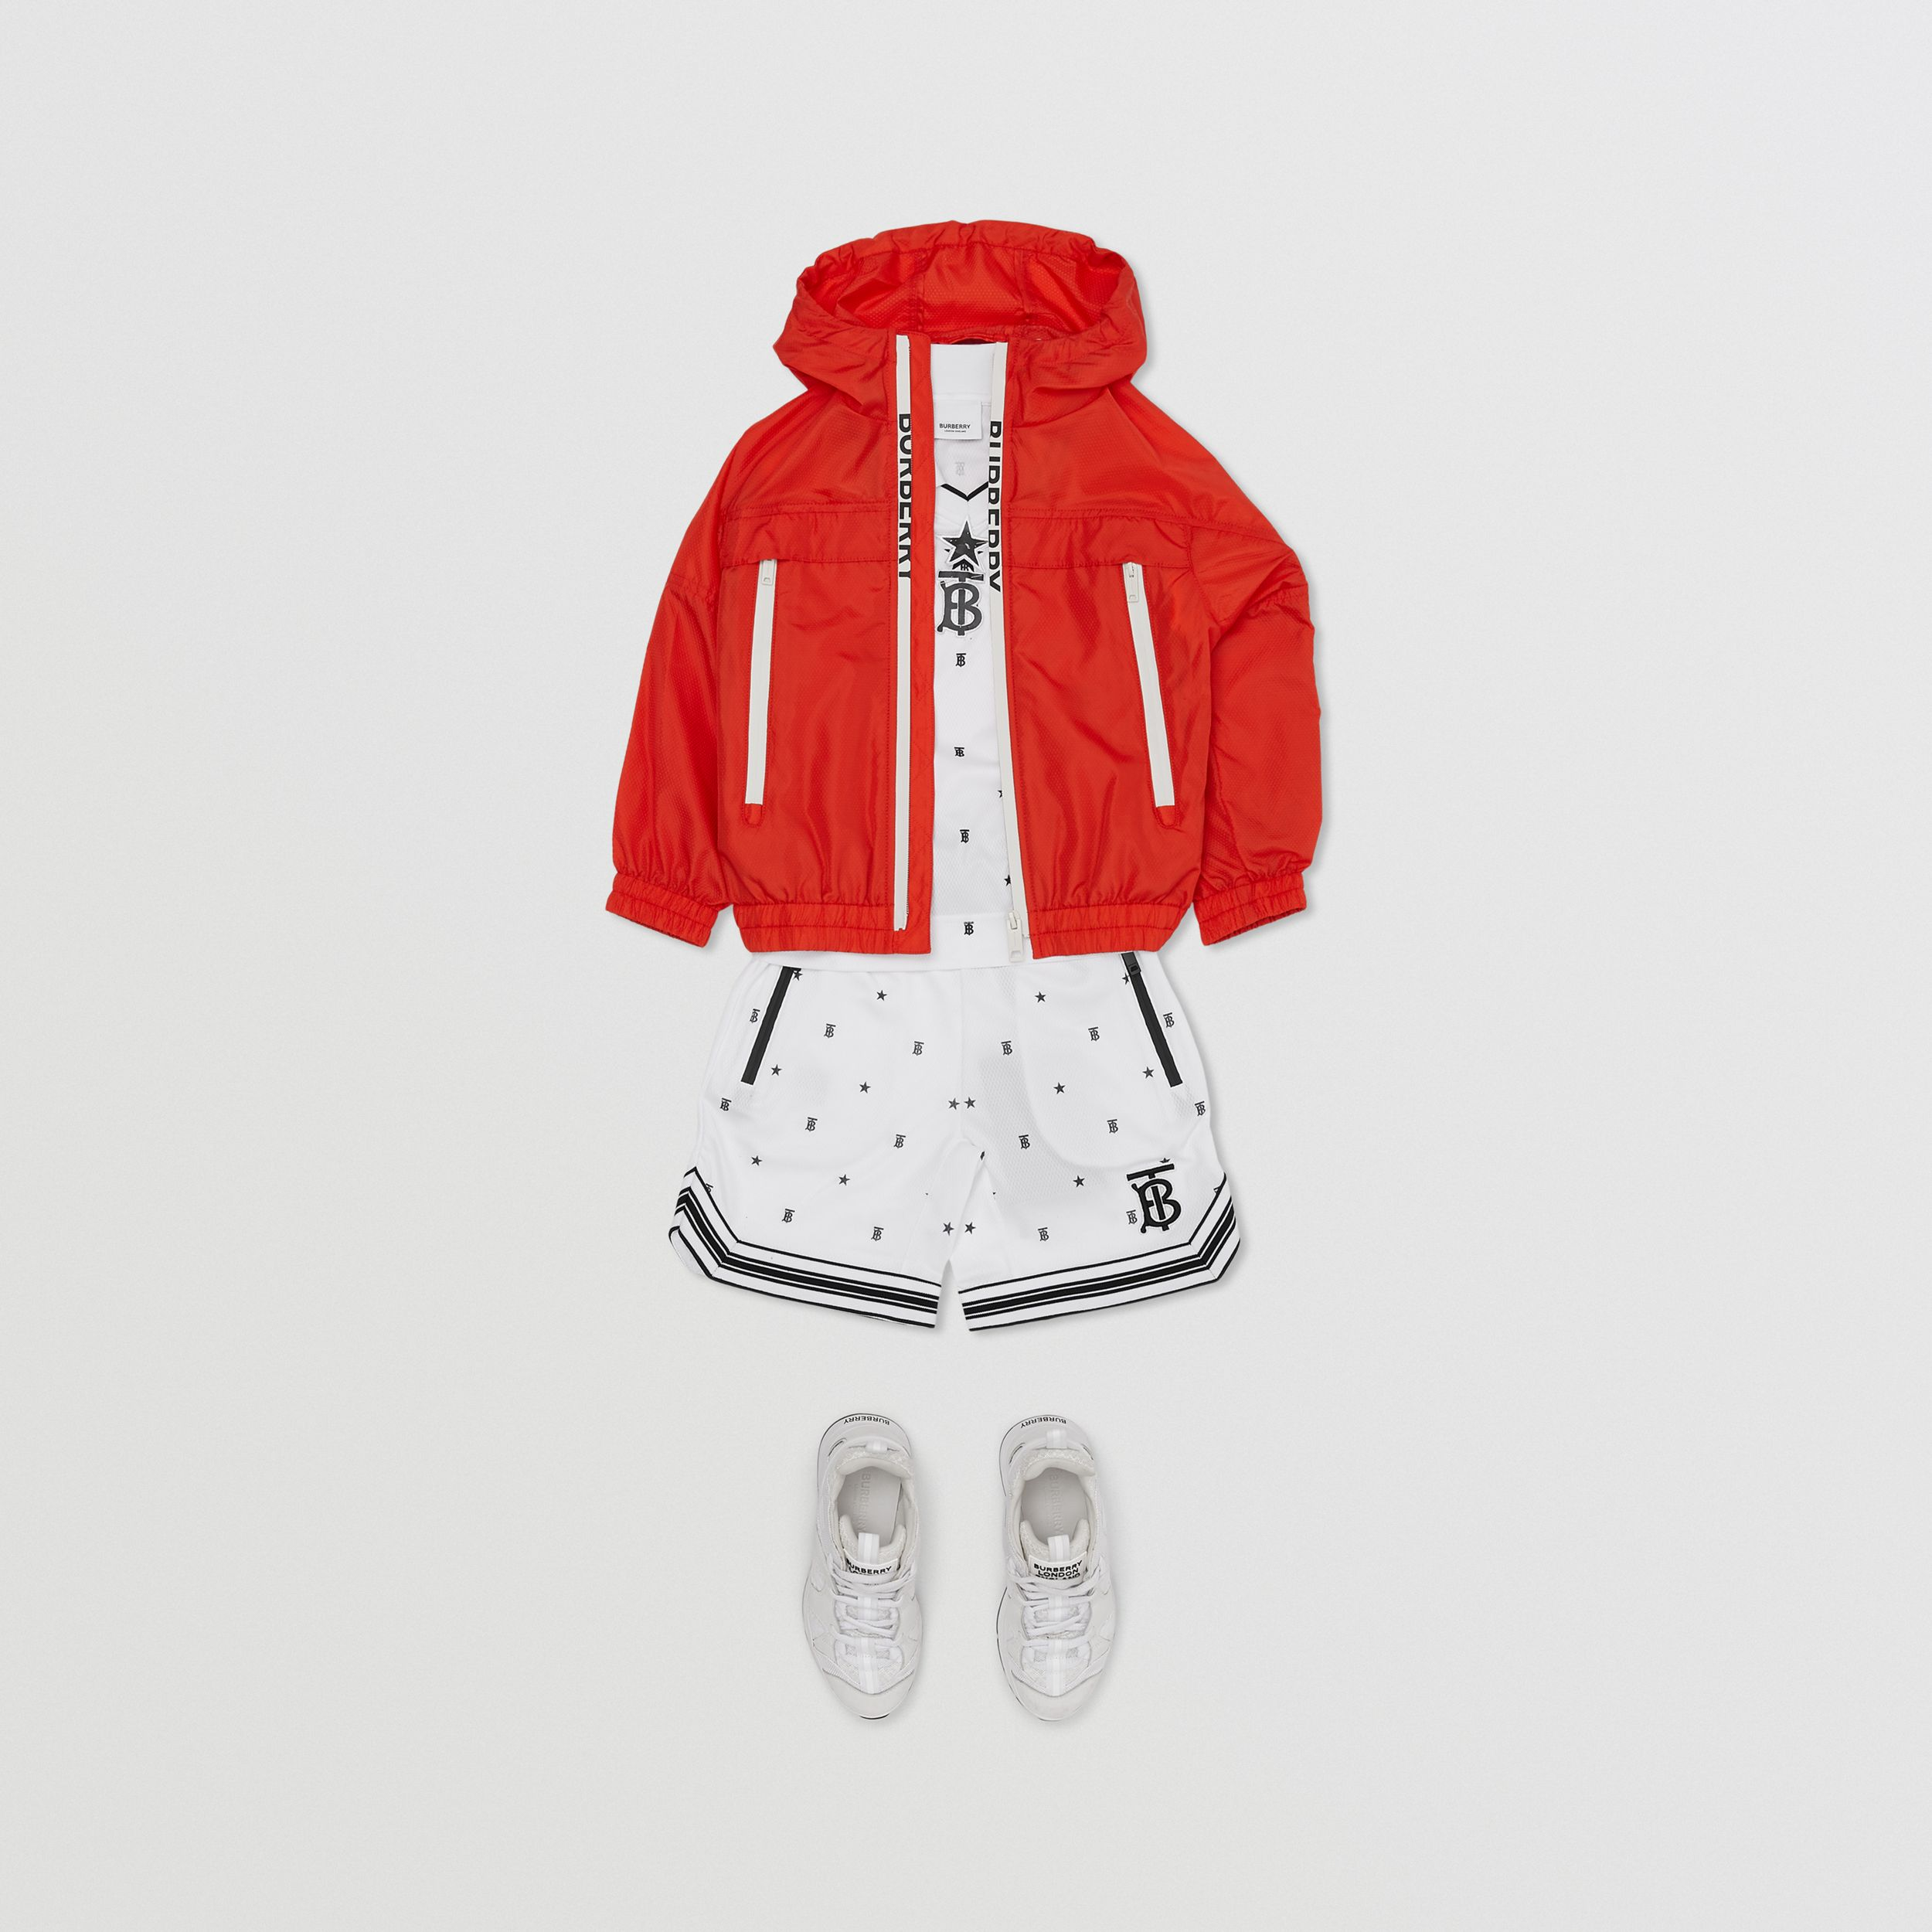 Logo Print Lightweight Hooded Jacket in Orange Red | Burberry - 4